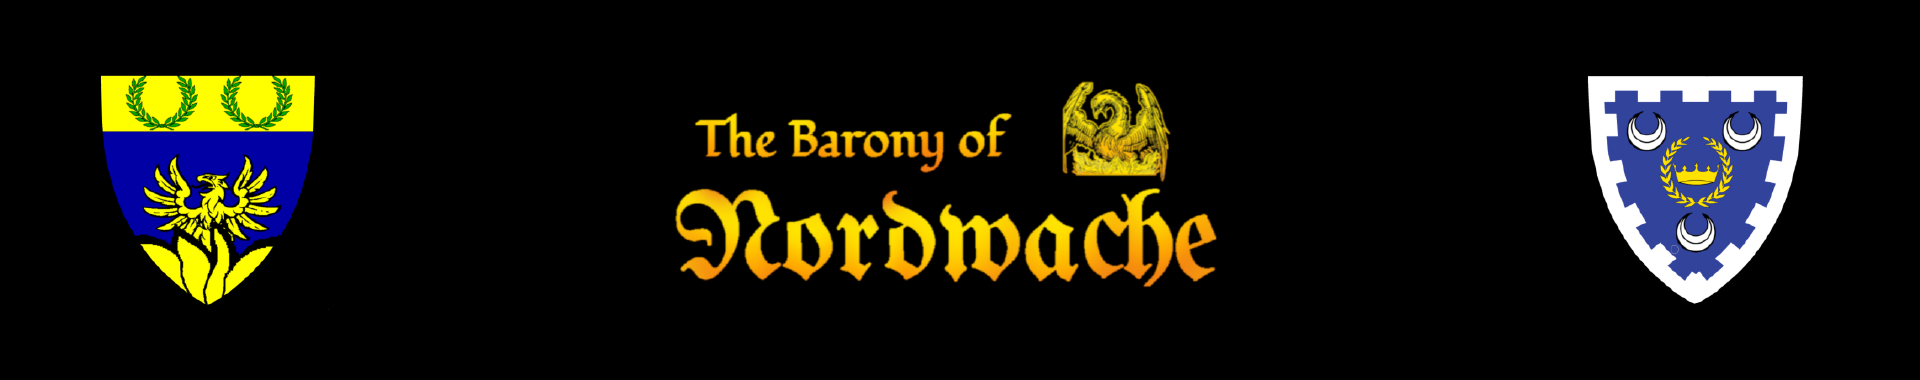 The Barony of Nordwache